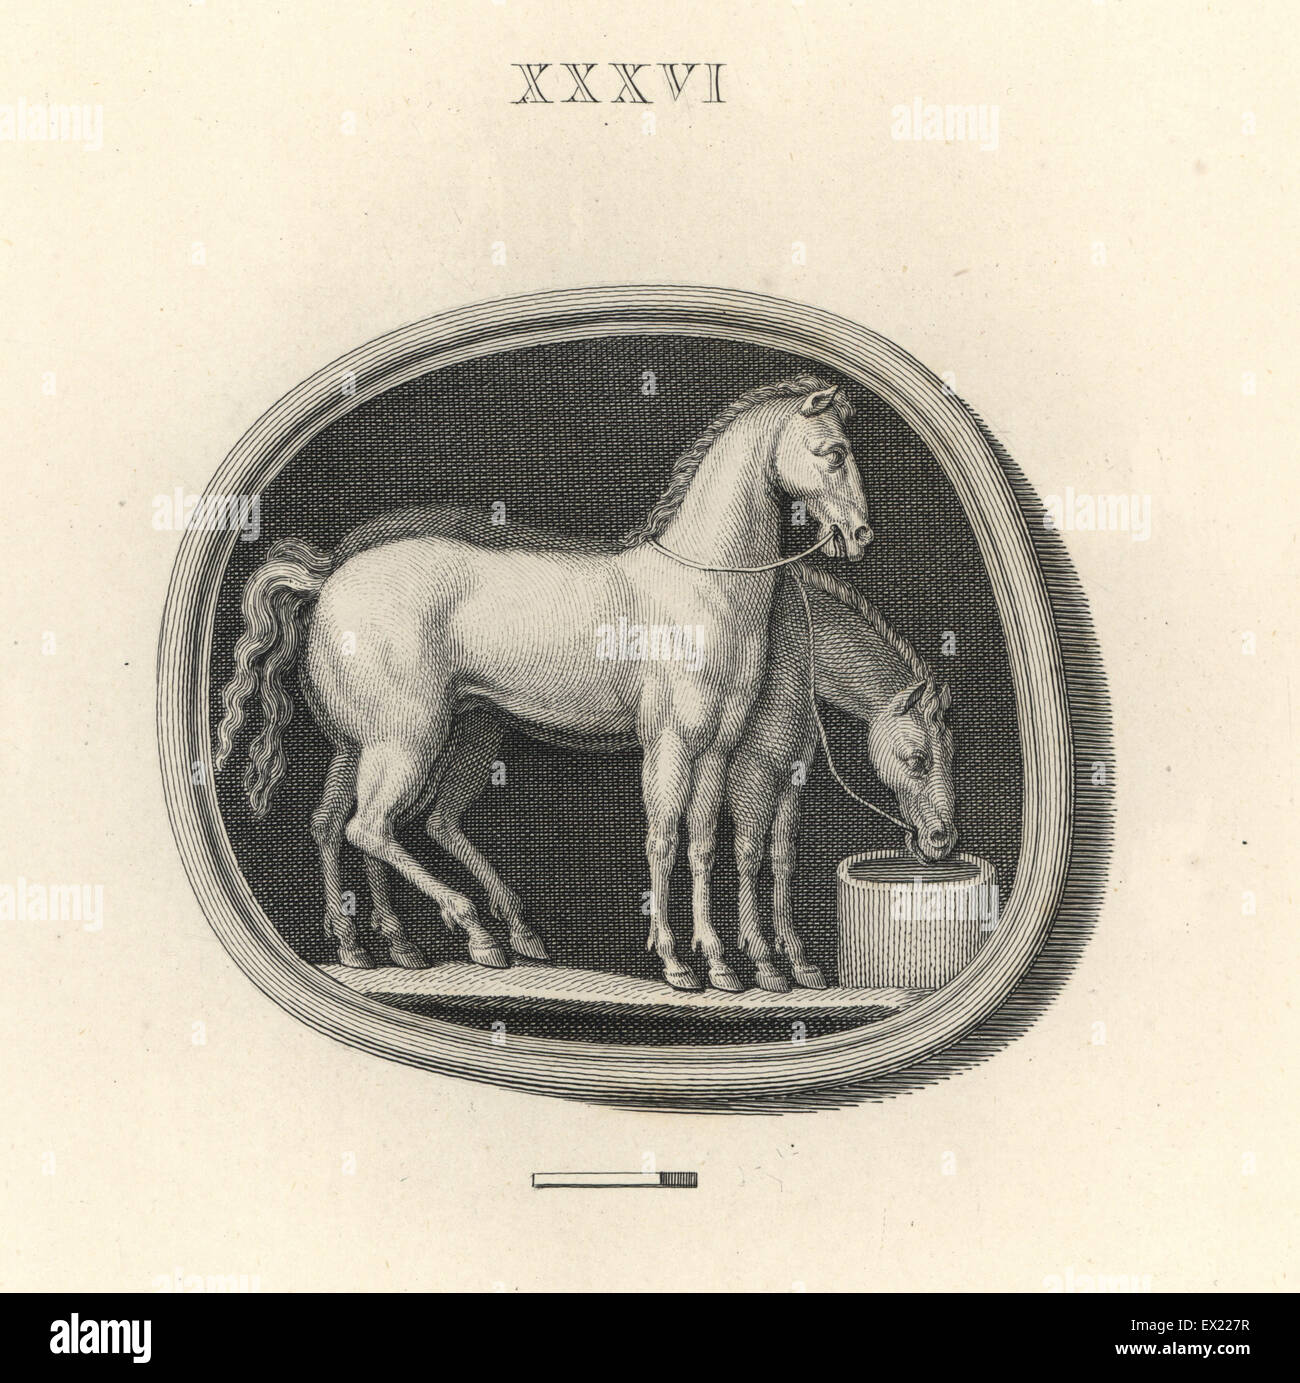 Two horses drinking water from a bucket. Copperplate engraving by Francesco Bartolozzi from 108 Plates of Antique - Stock Image